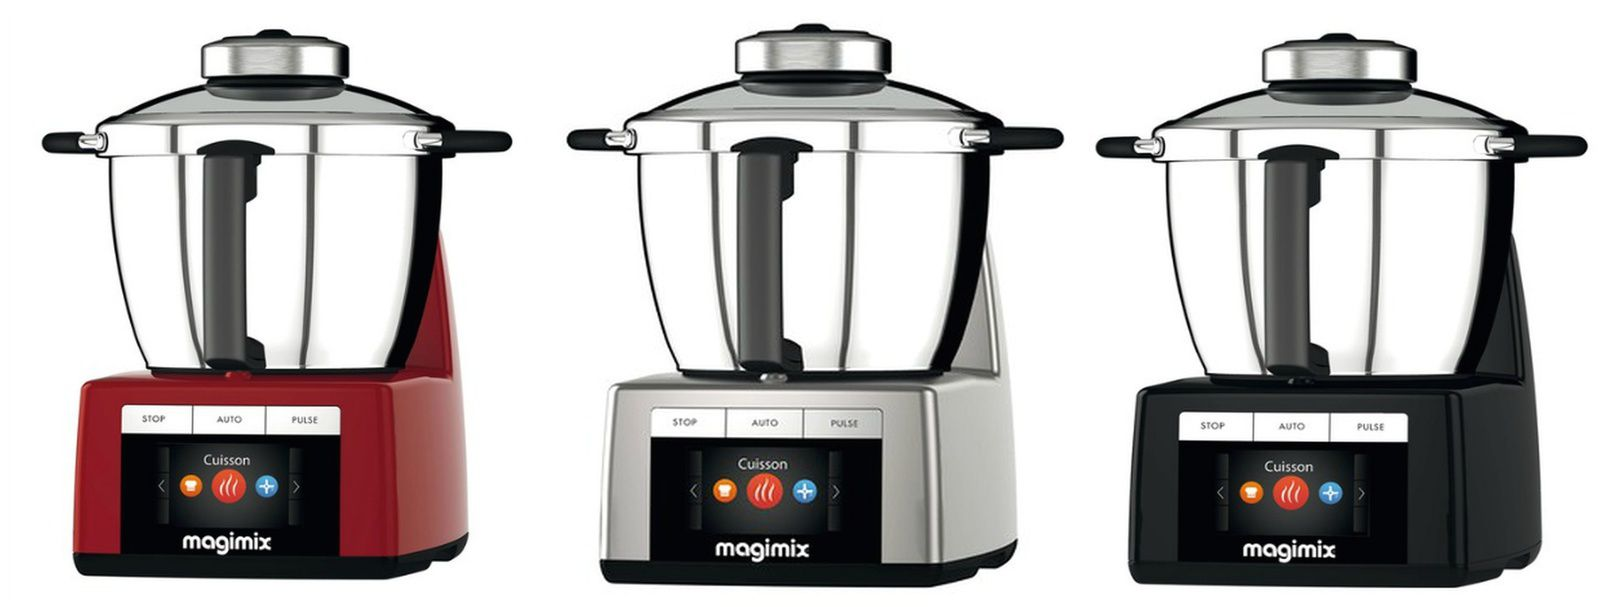 Difference Magimix Et Thermomix magimix cook expert ou thermomix? comparaison test robot